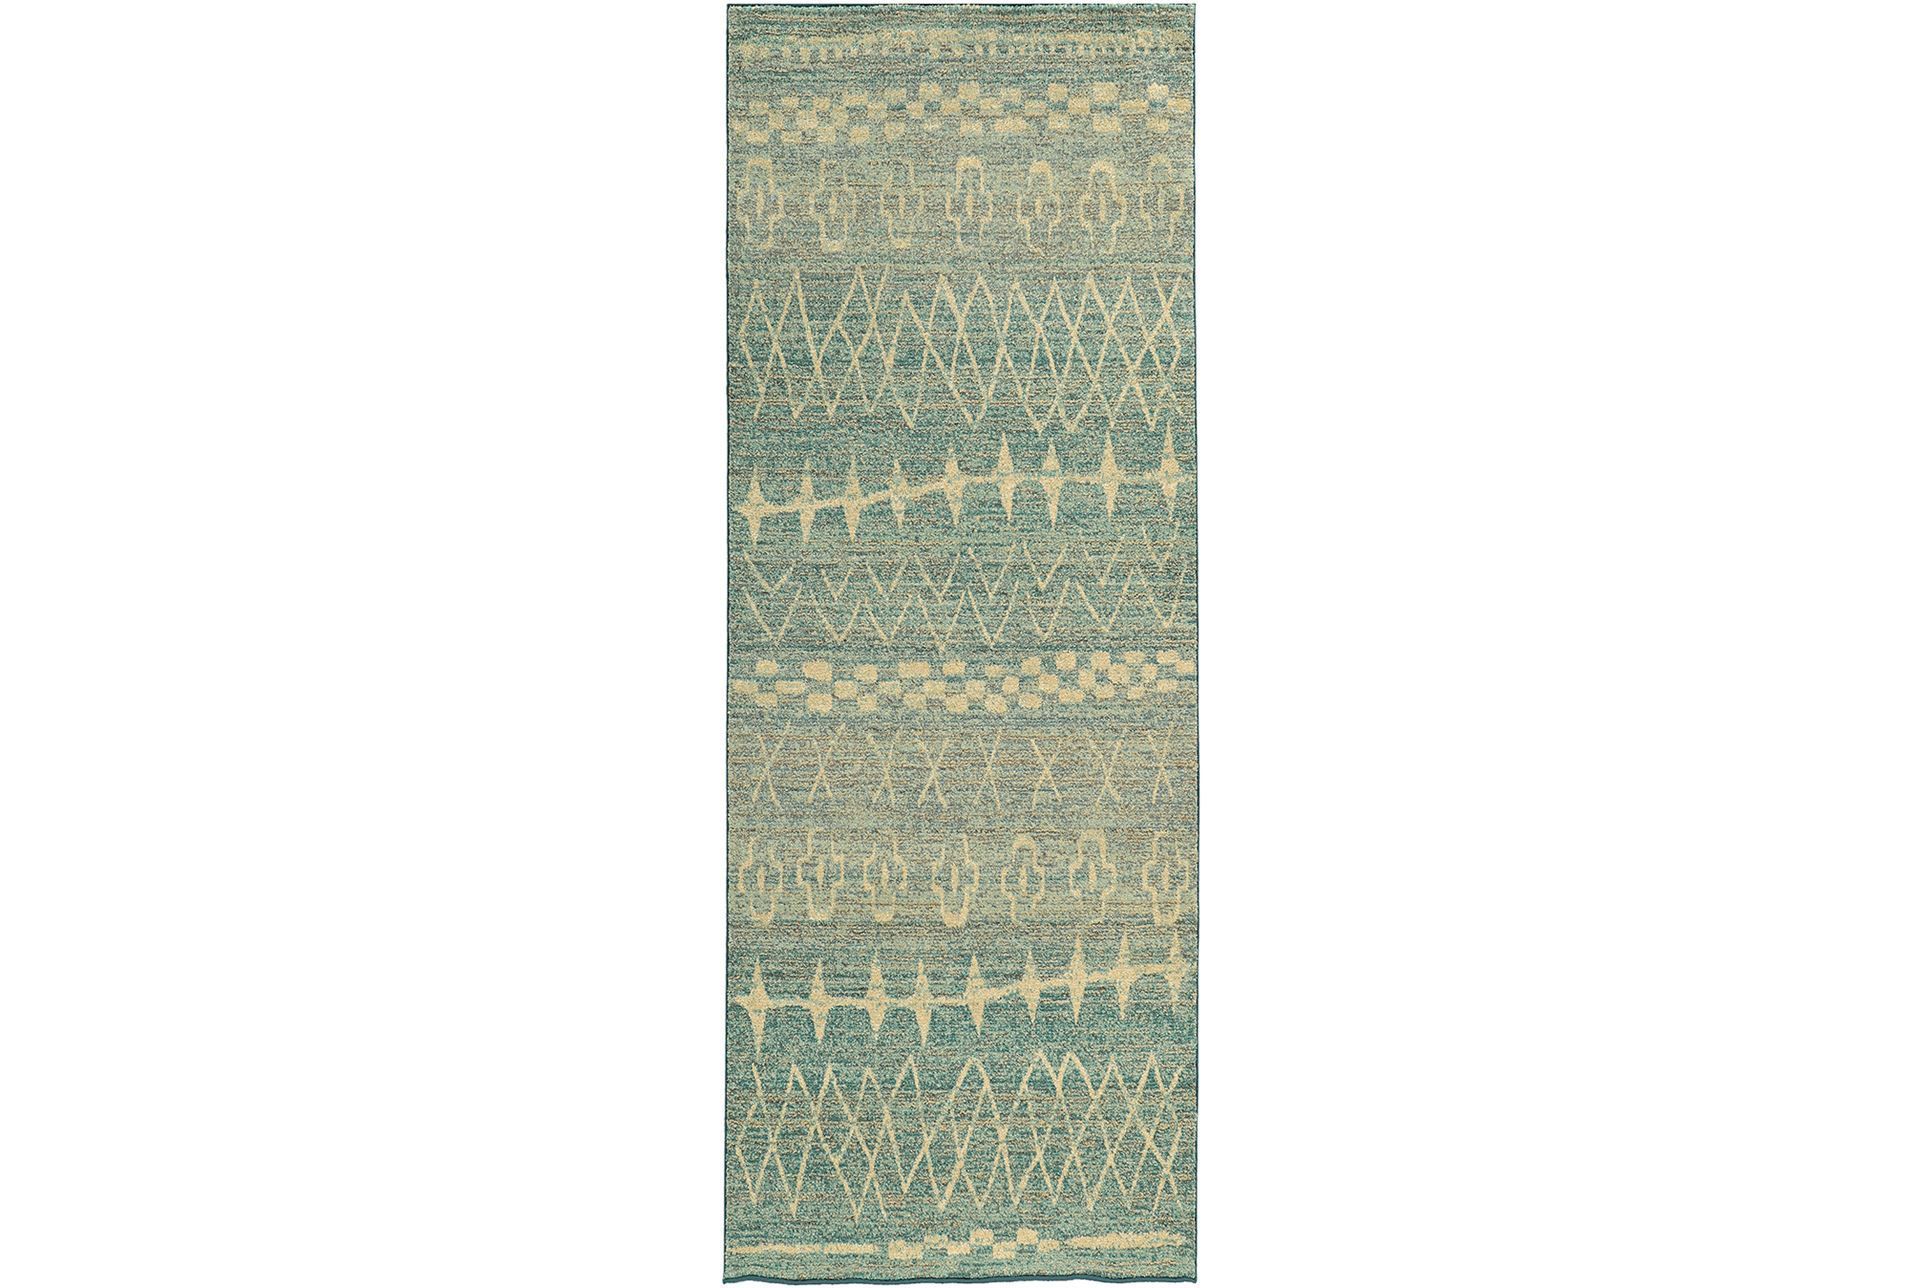 31x120 rug matla seaglass living spaces for Living spaces rugs